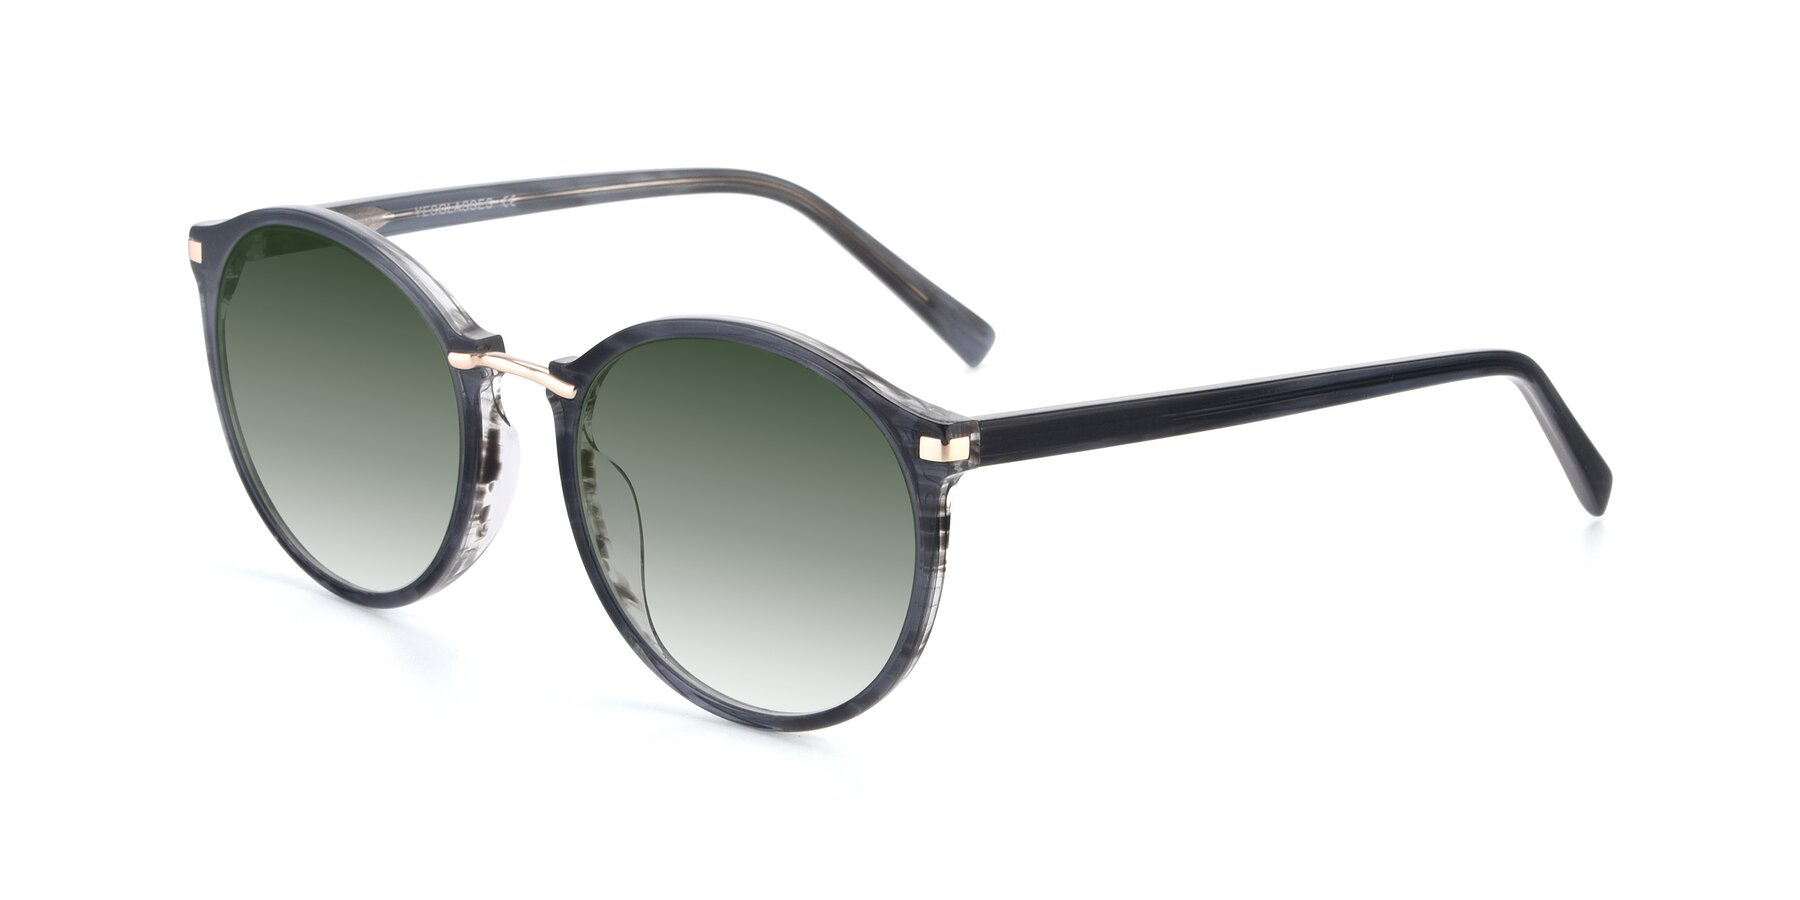 Angle of 17582 in Translucent Black with Green Gradient Lenses